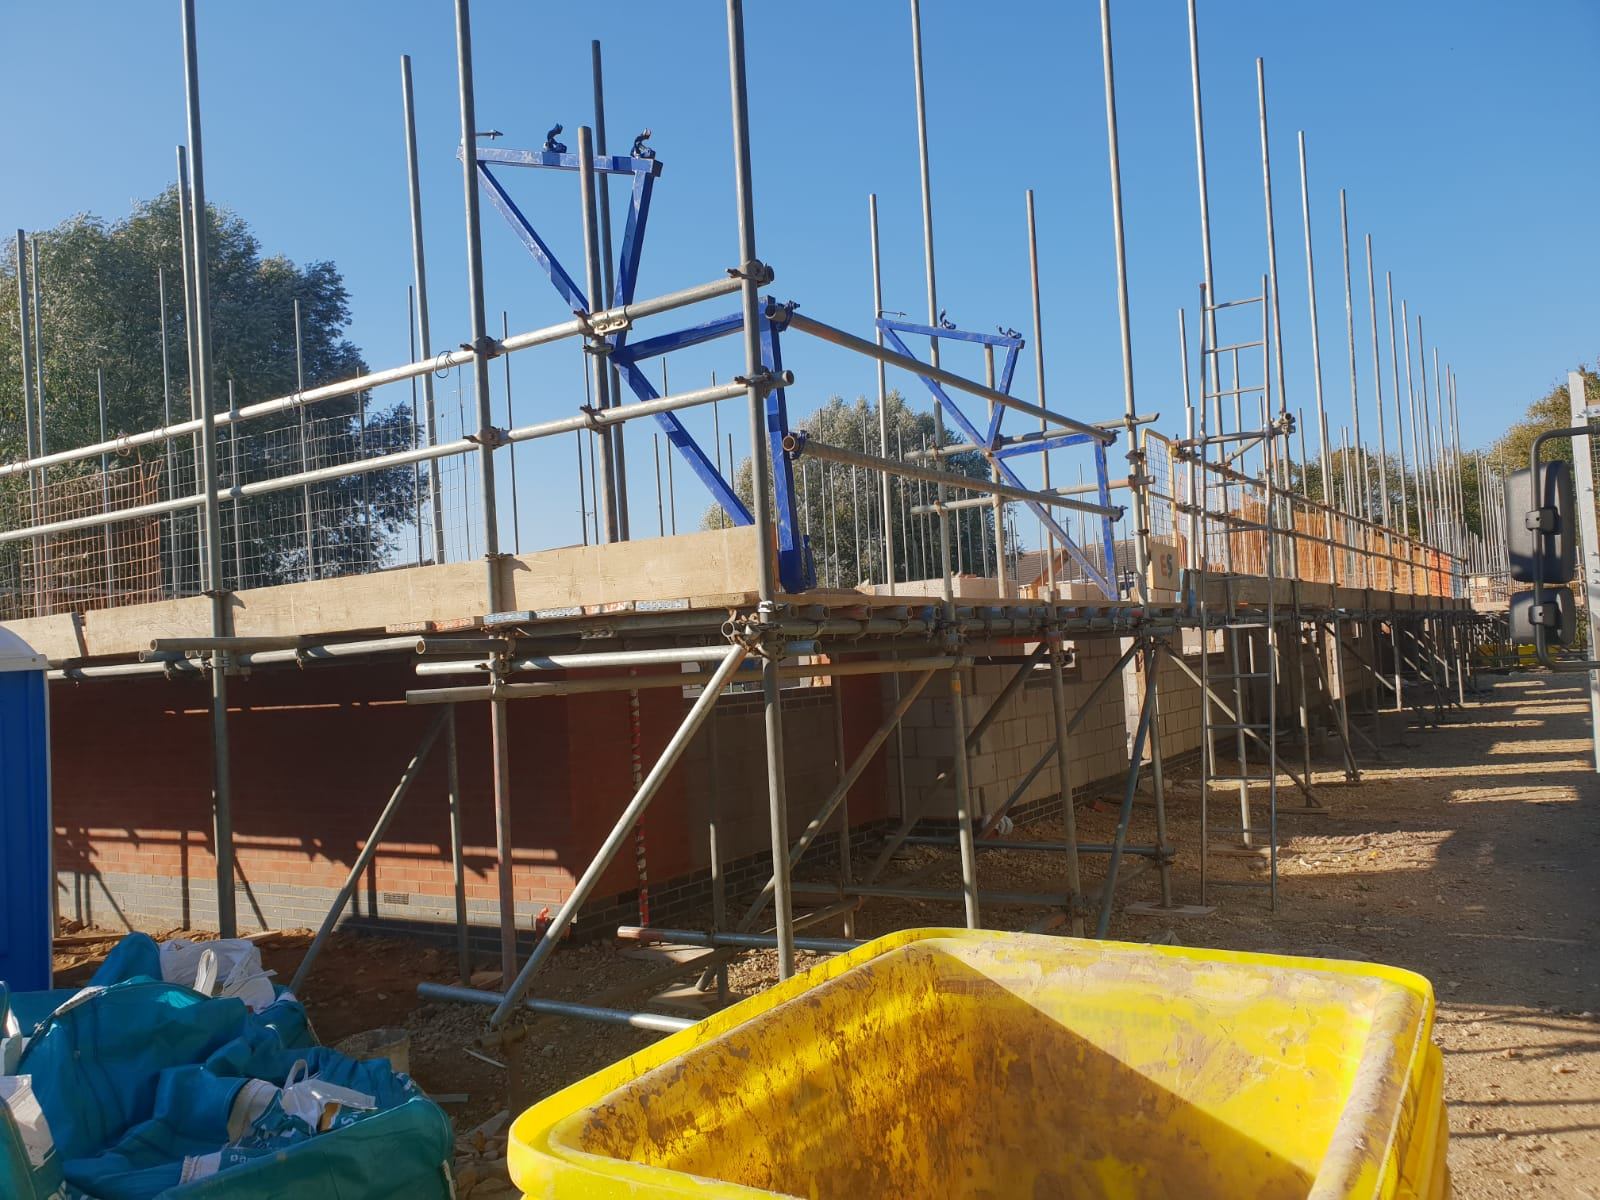 Earls Scaffolding - Independent Scaffolding - Domestic Scaffolding - Peterborough Block of Flats6